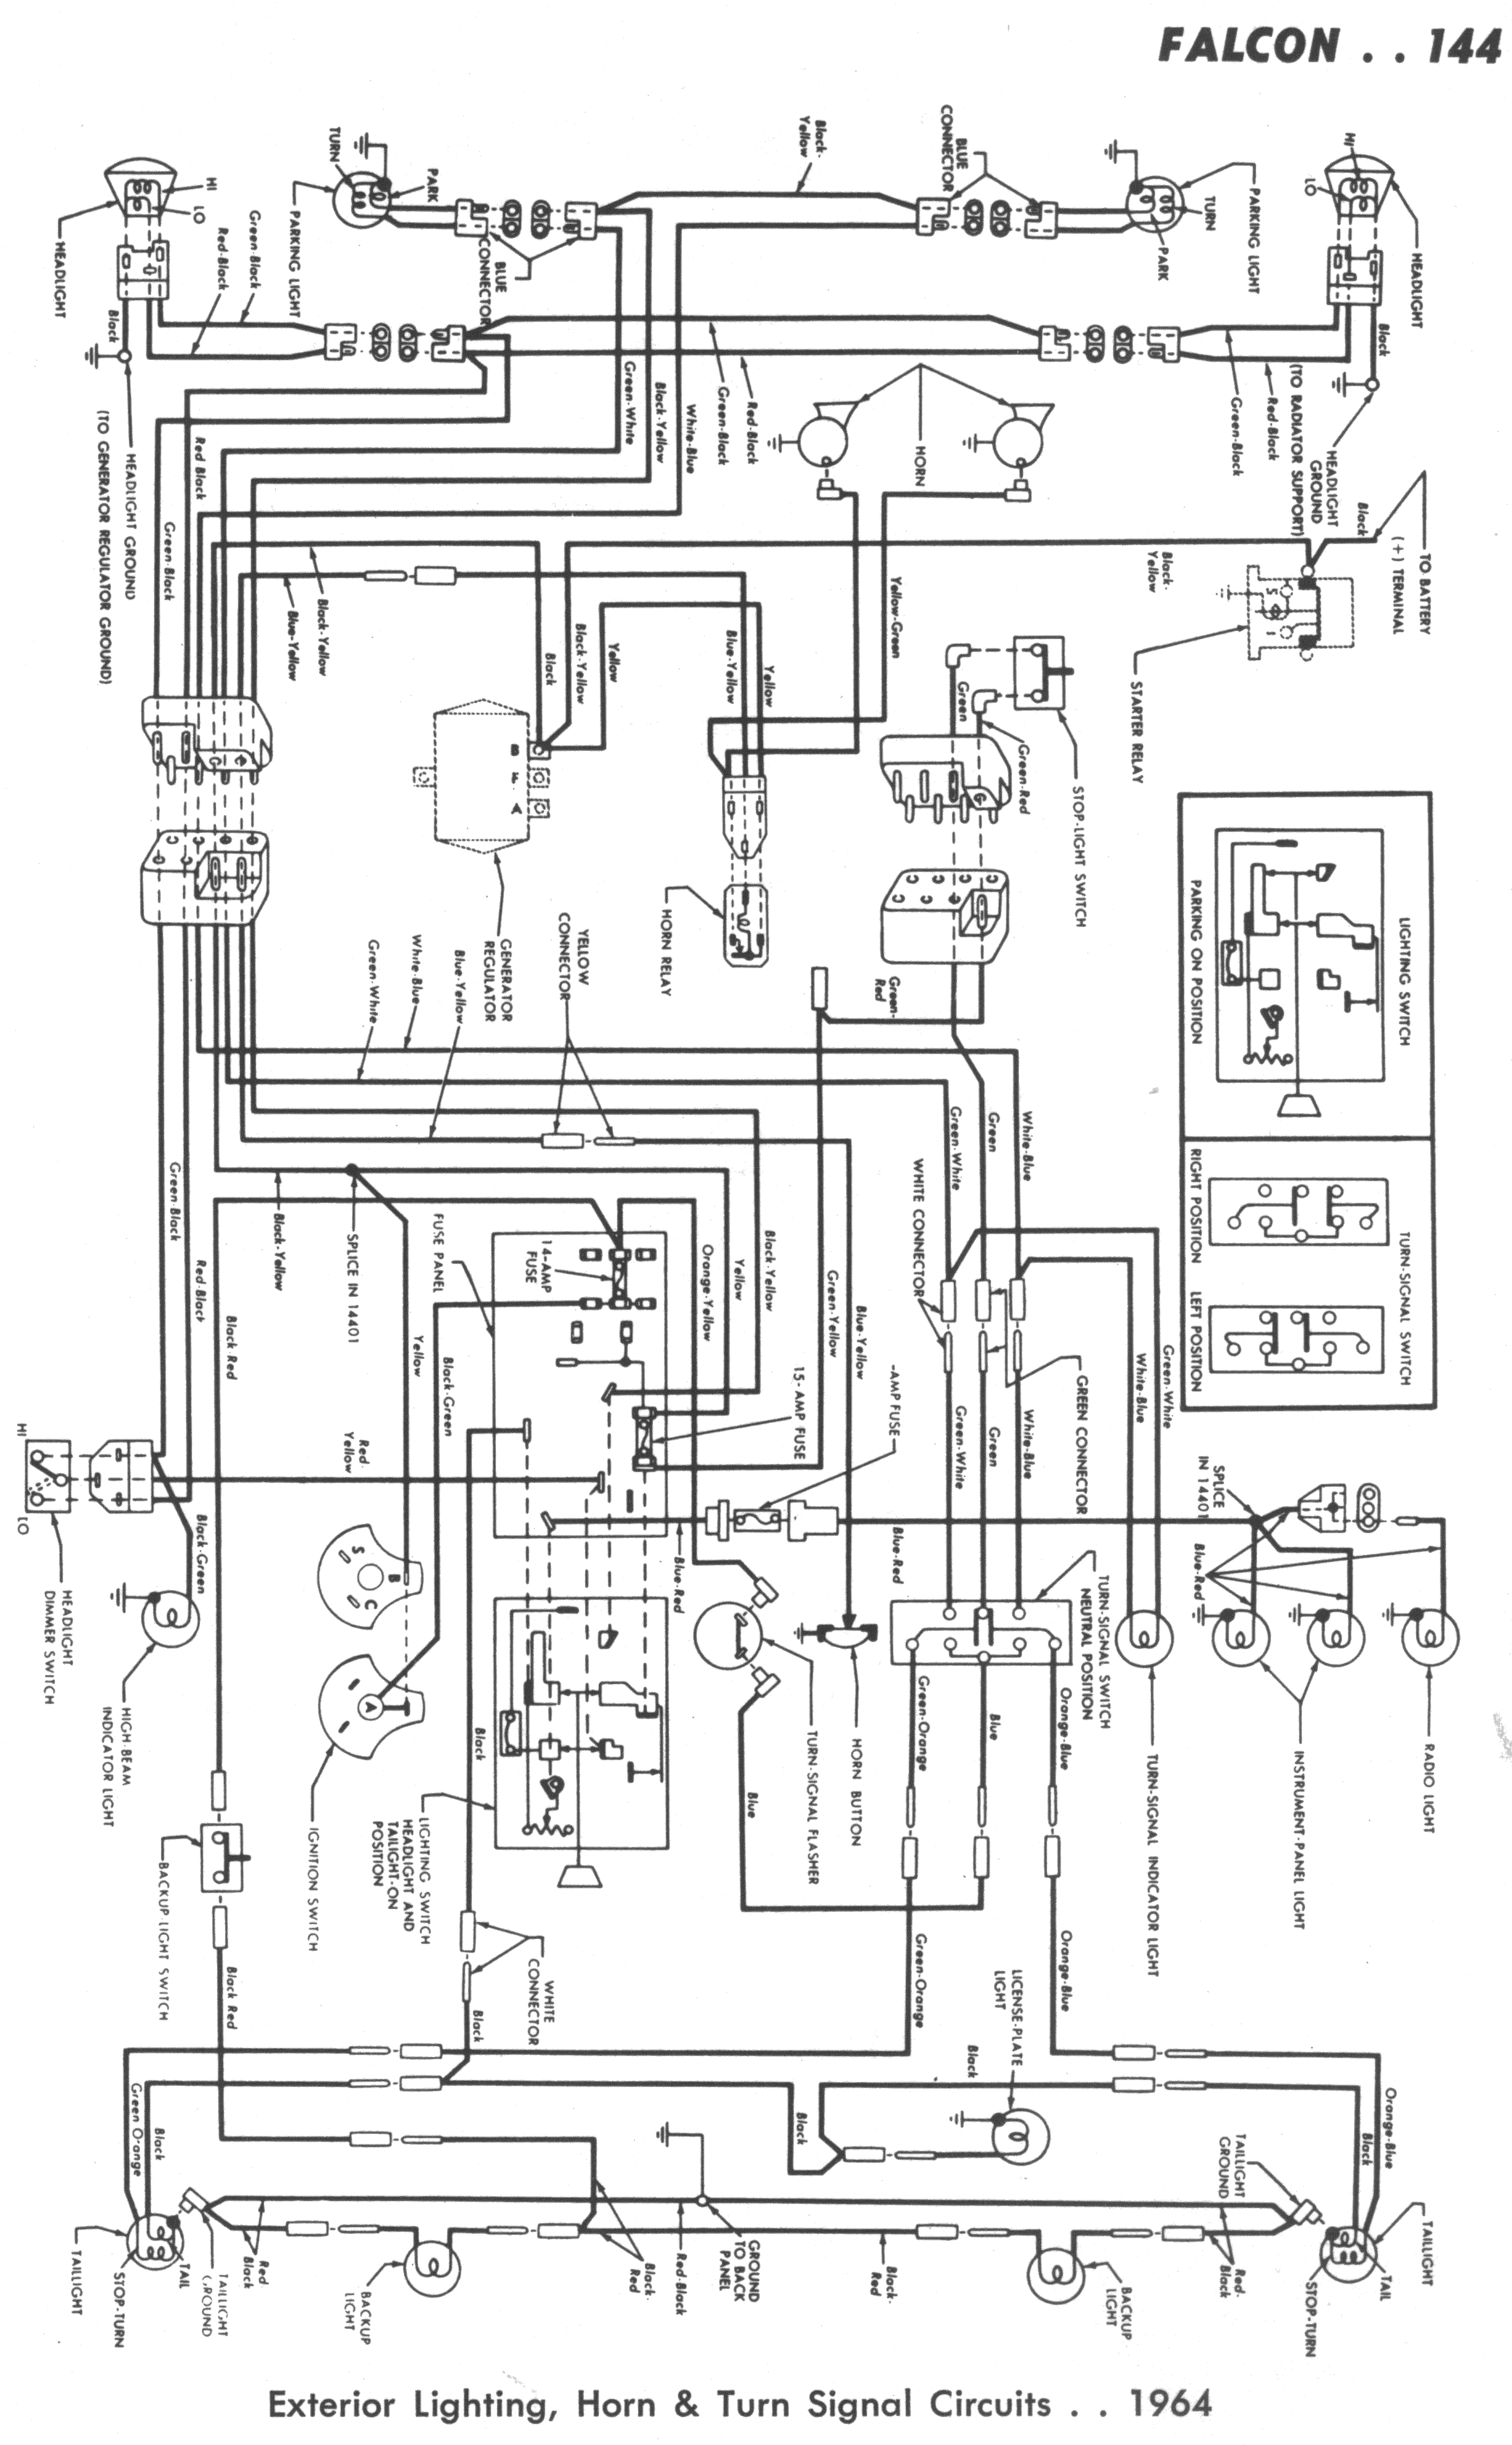 ford falcon instrument wiring simple wiring diagram schemaford falcon  instrument wiring wiring diagram ses simplex control